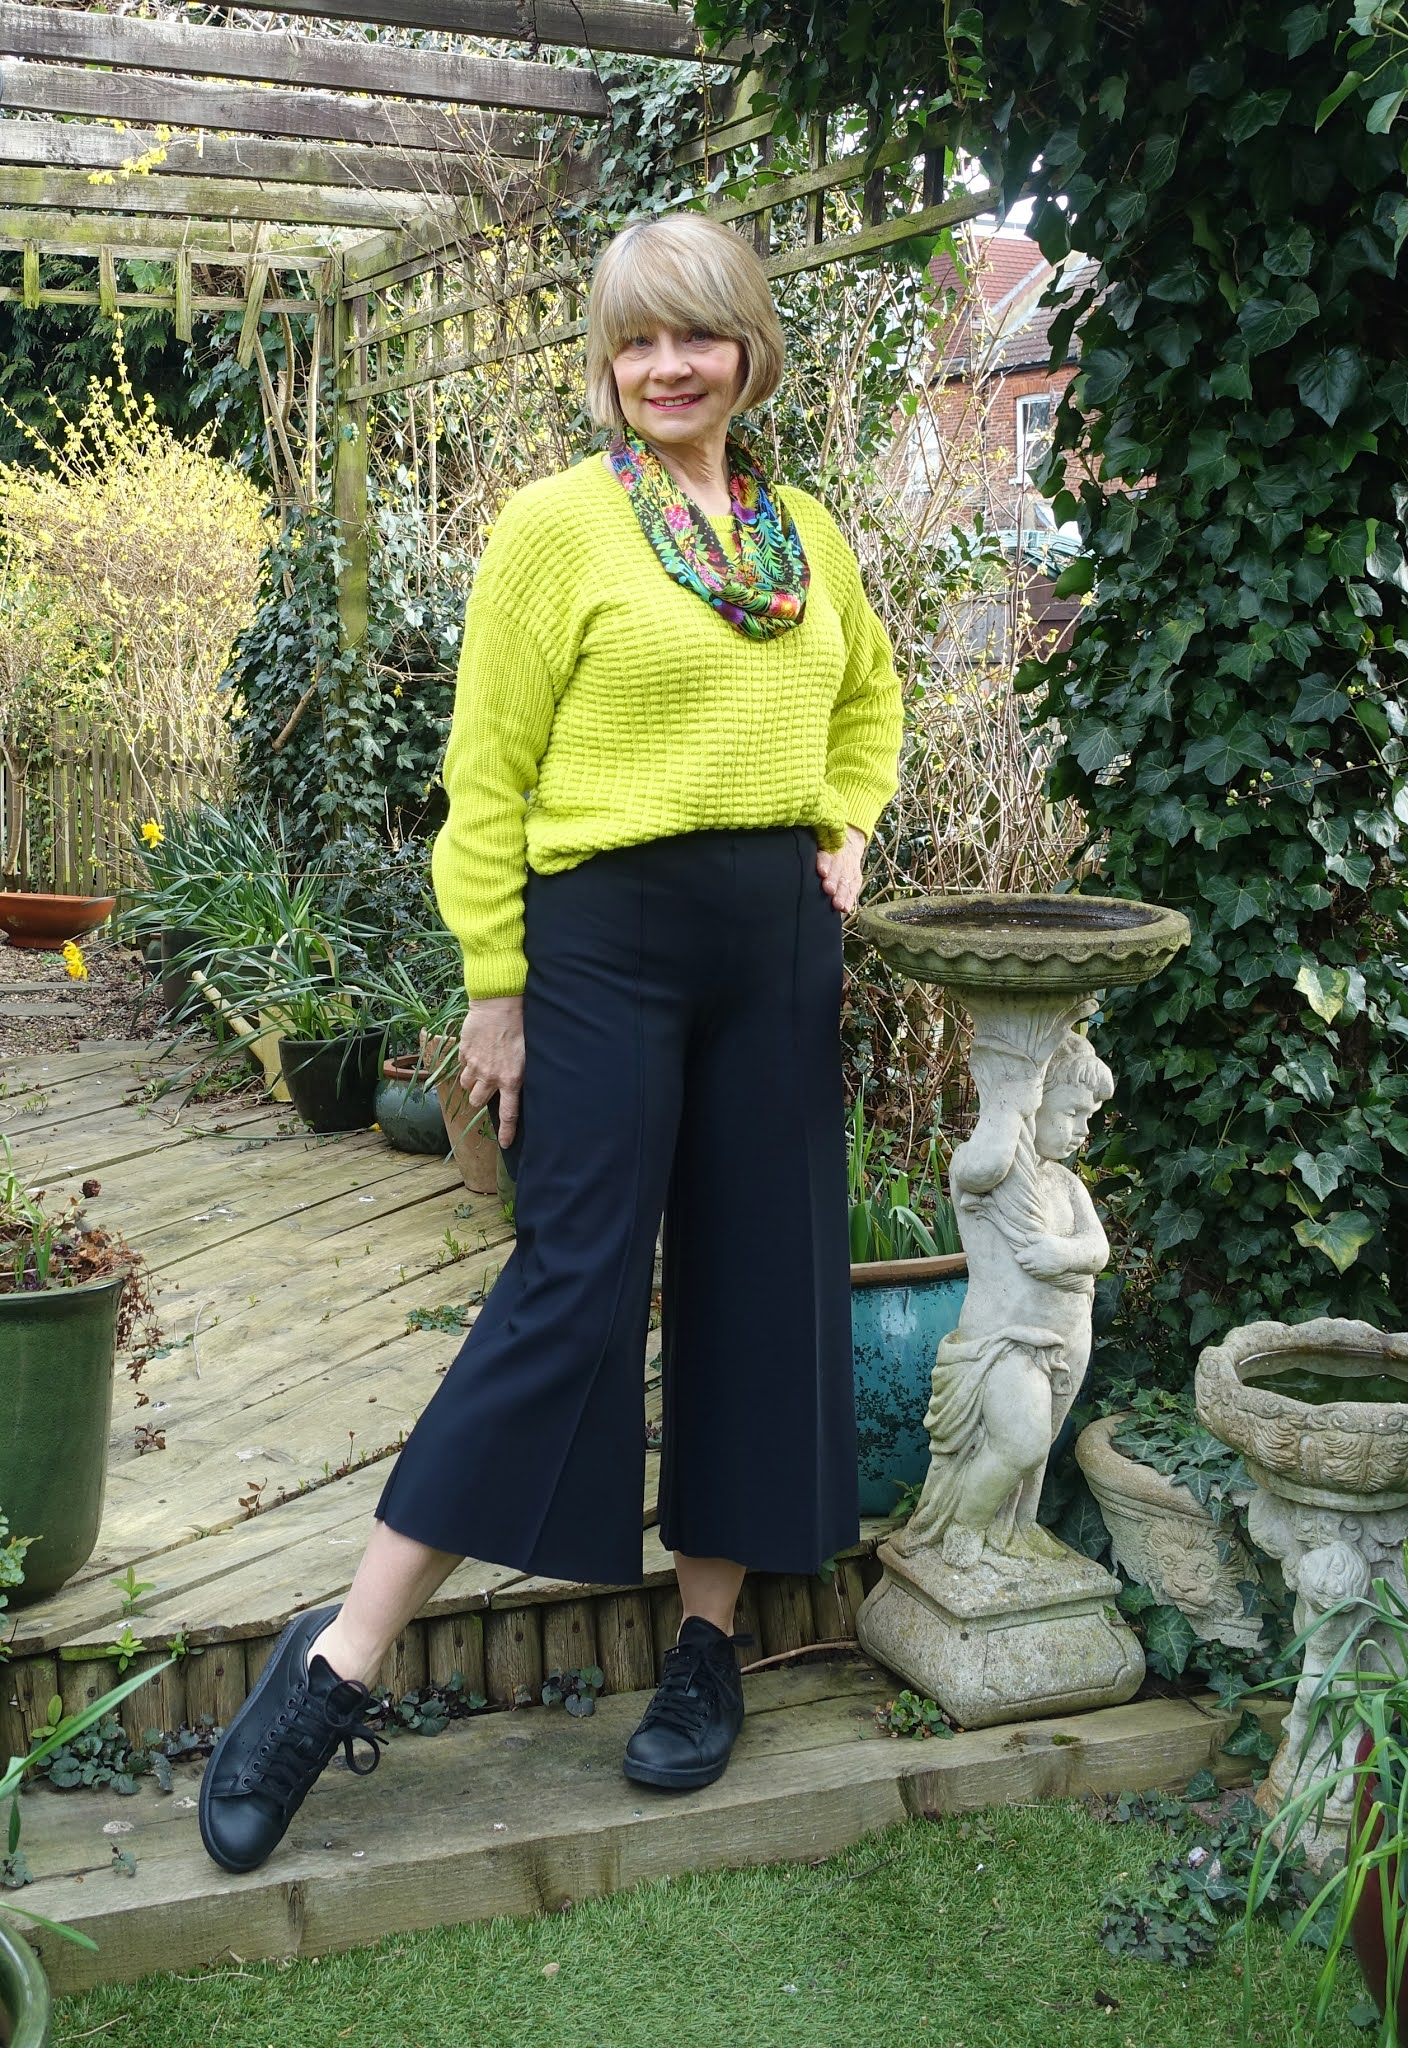 A colourful Liberty print scarf adds spring color to a lime green jumper